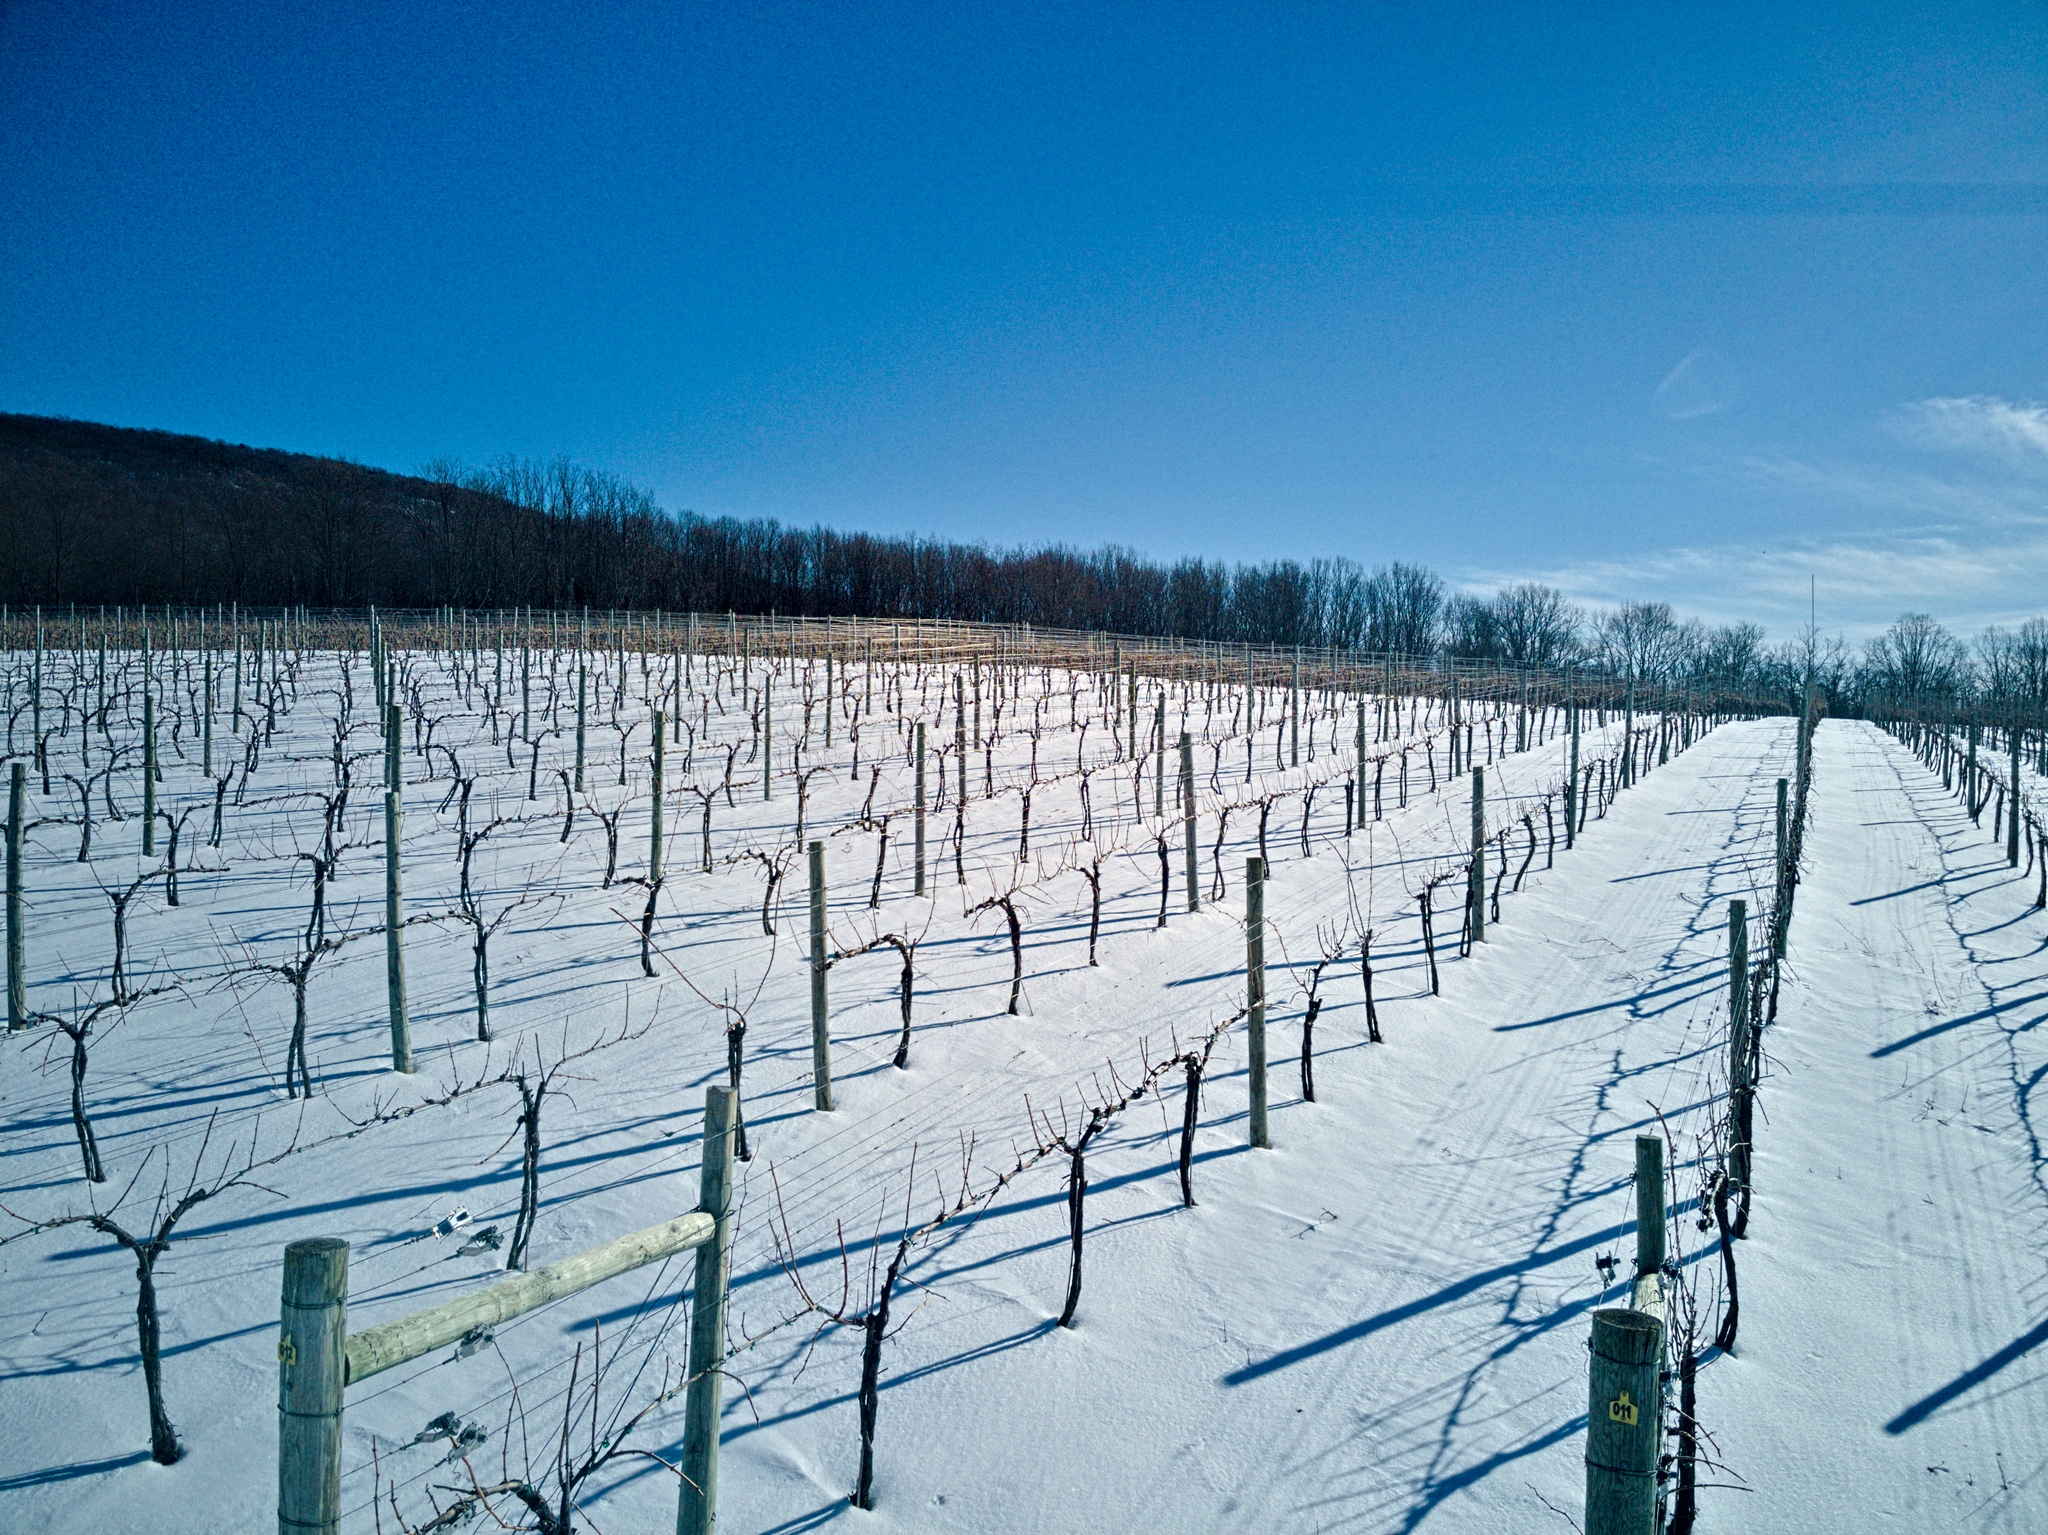 Sunny, snowy vineyard with rows of grape vines